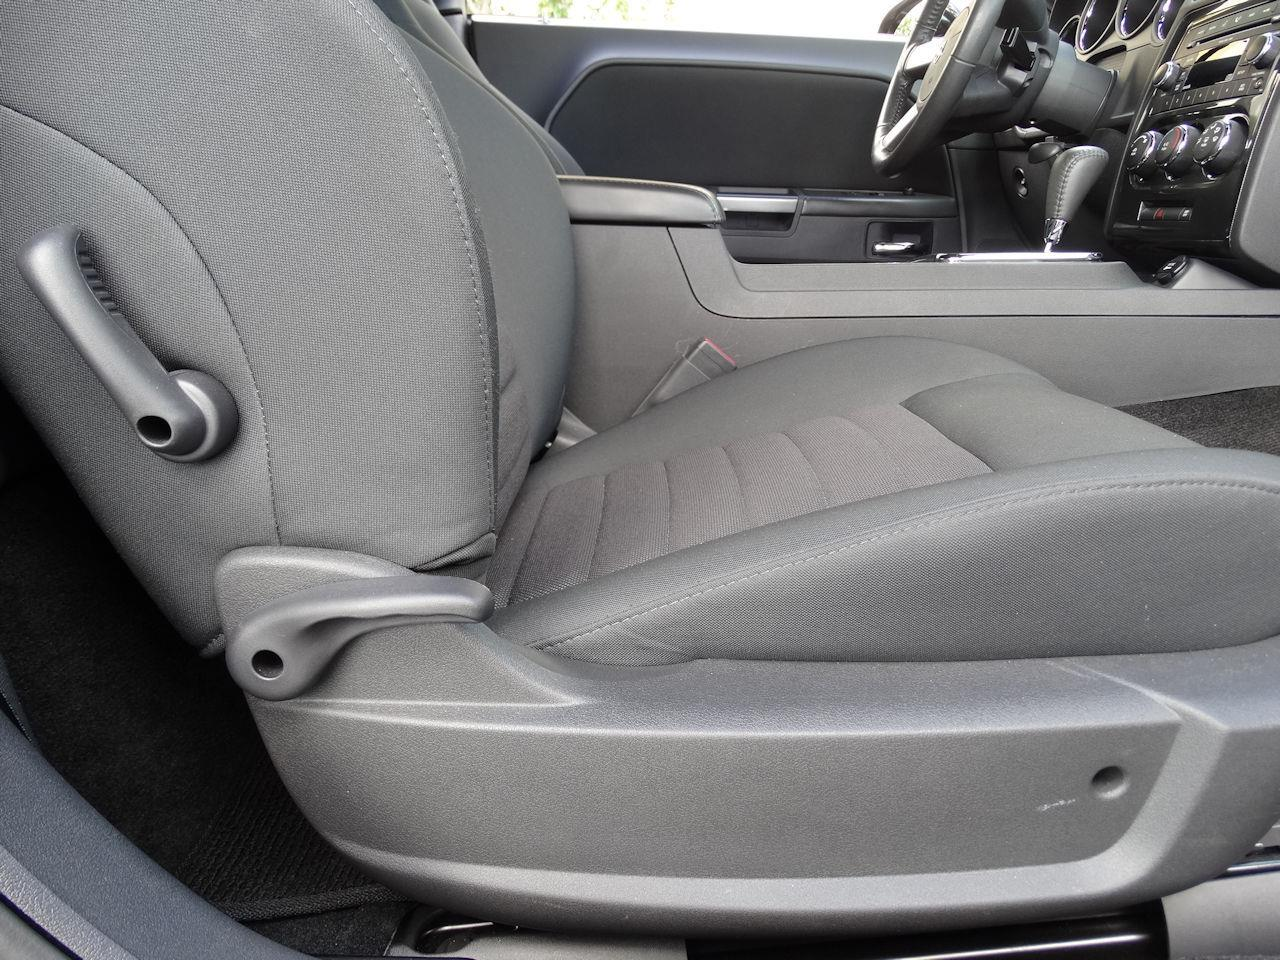 Large Picture of '09 Challenger - $19,995.00 Offered by Gateway Classic Cars - Fort Lauderdale - MCFB